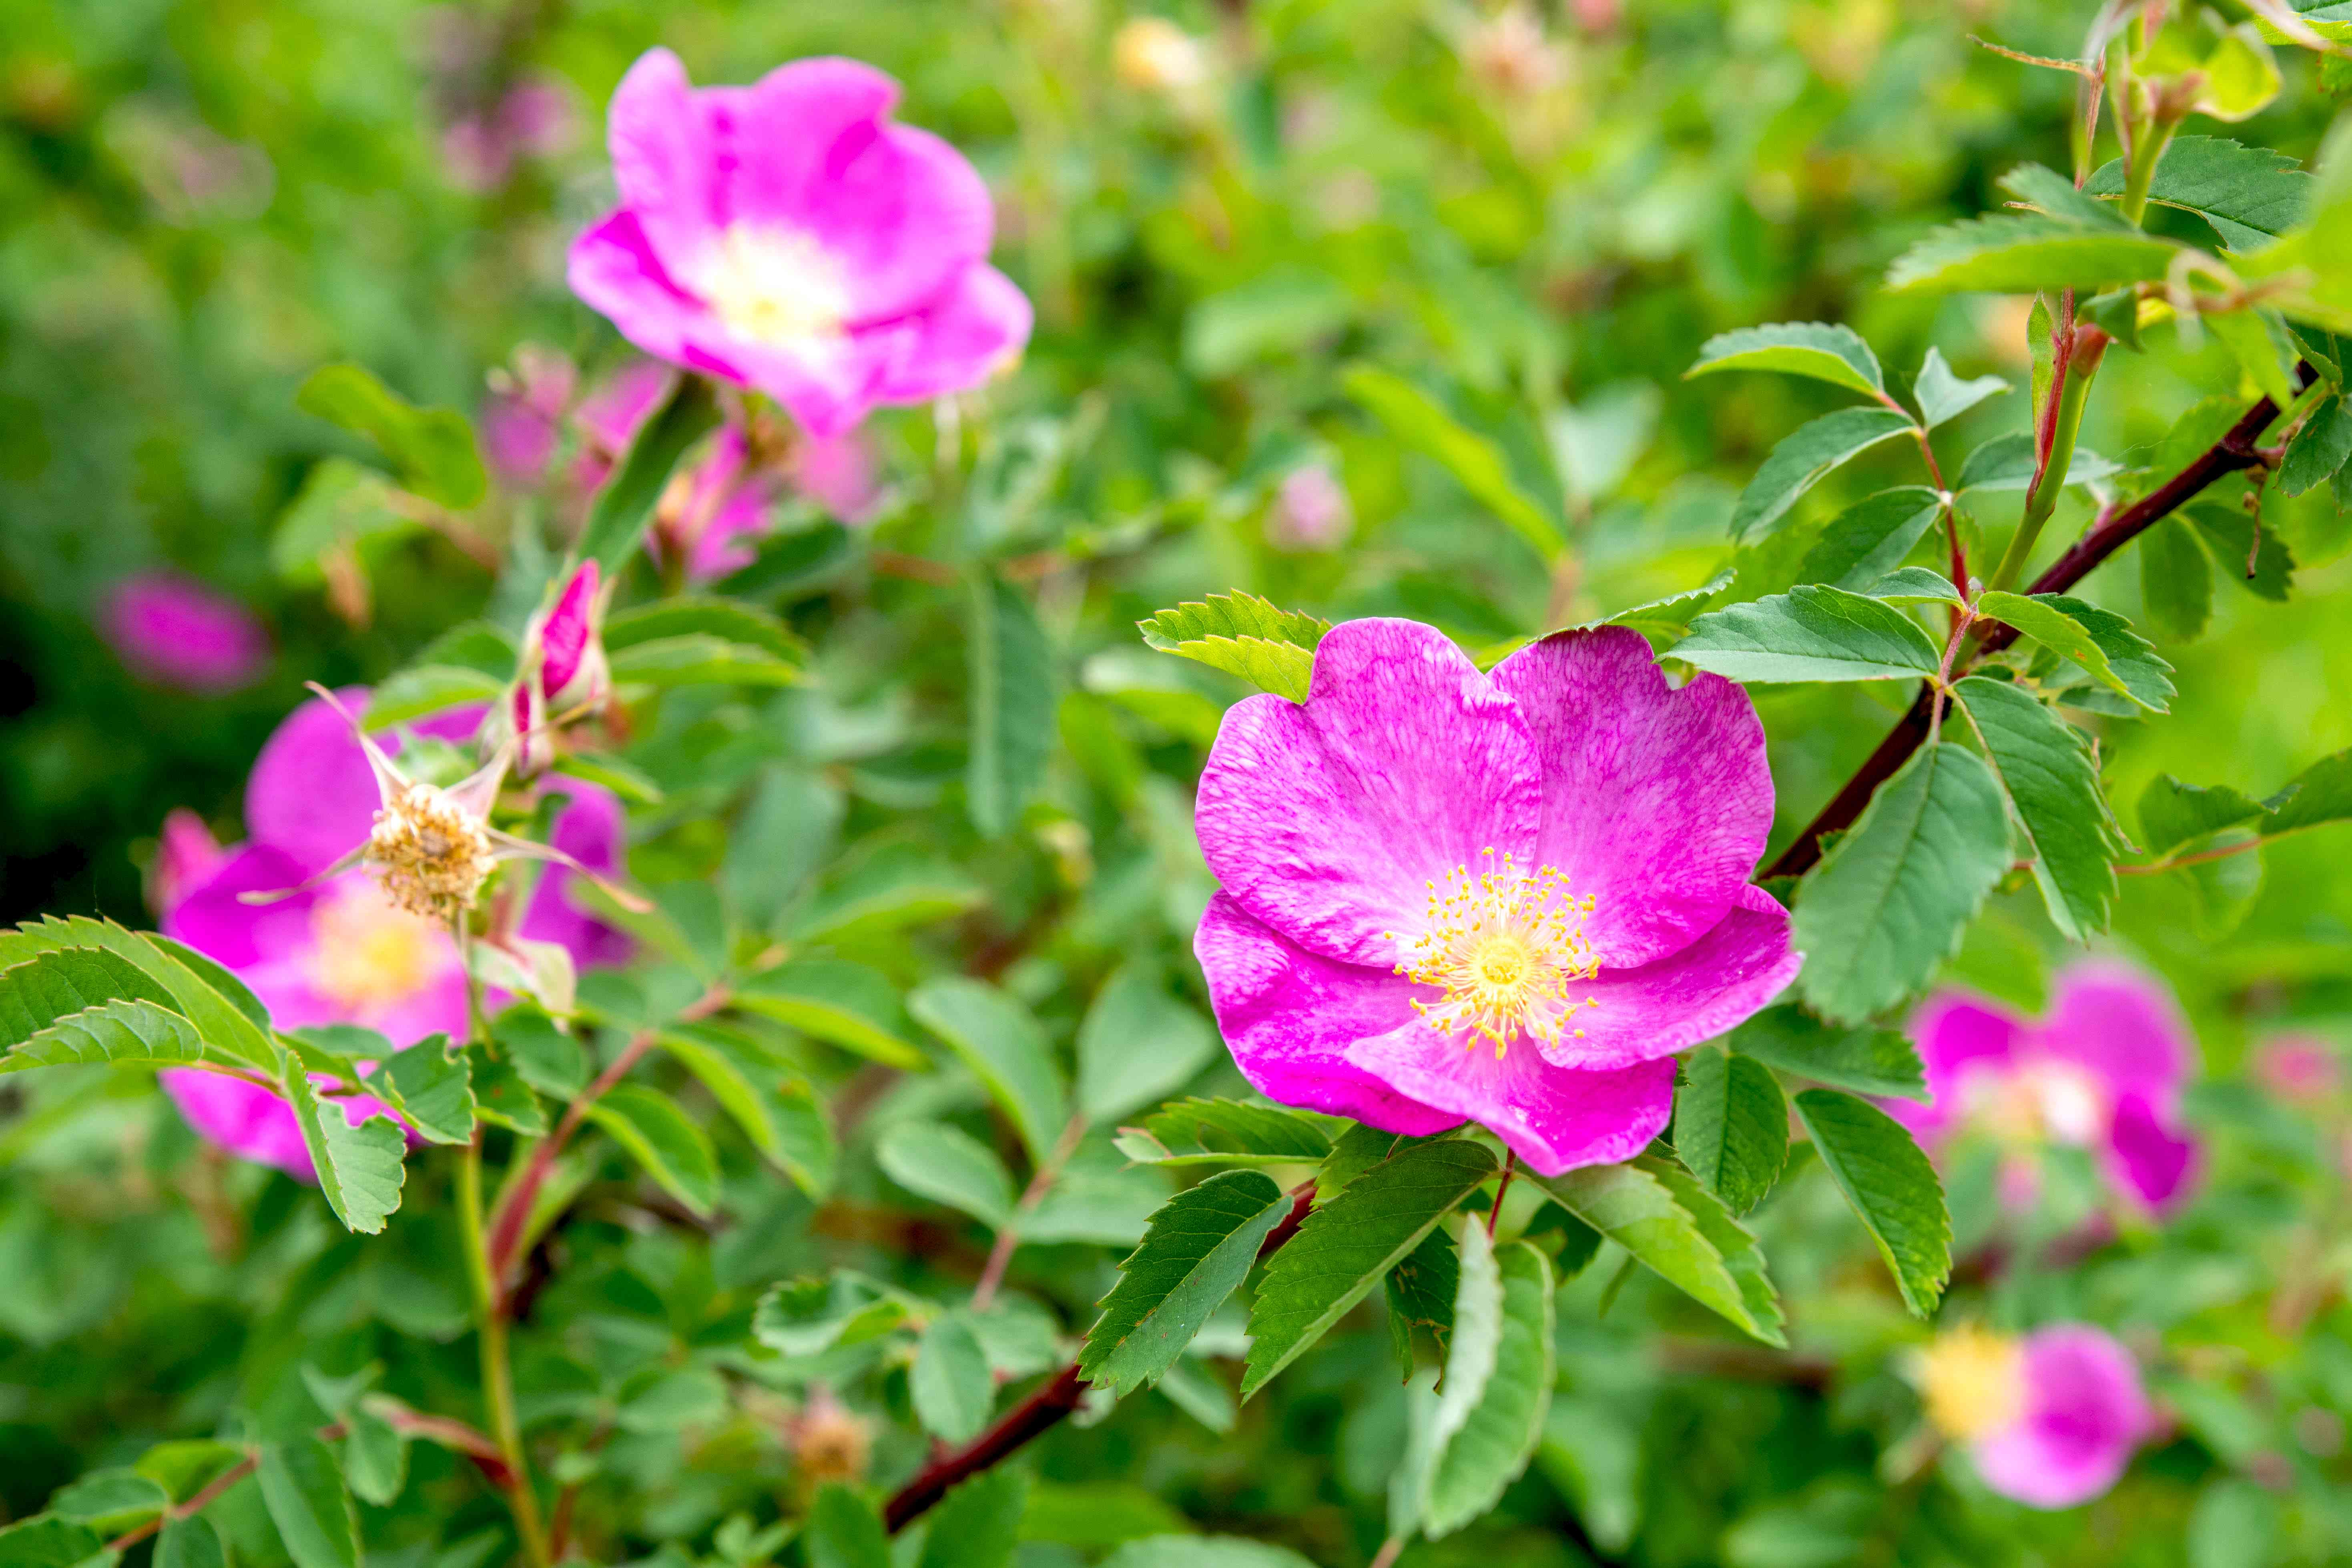 Carolina roses on shrub branch with pink flowers and yellow centers